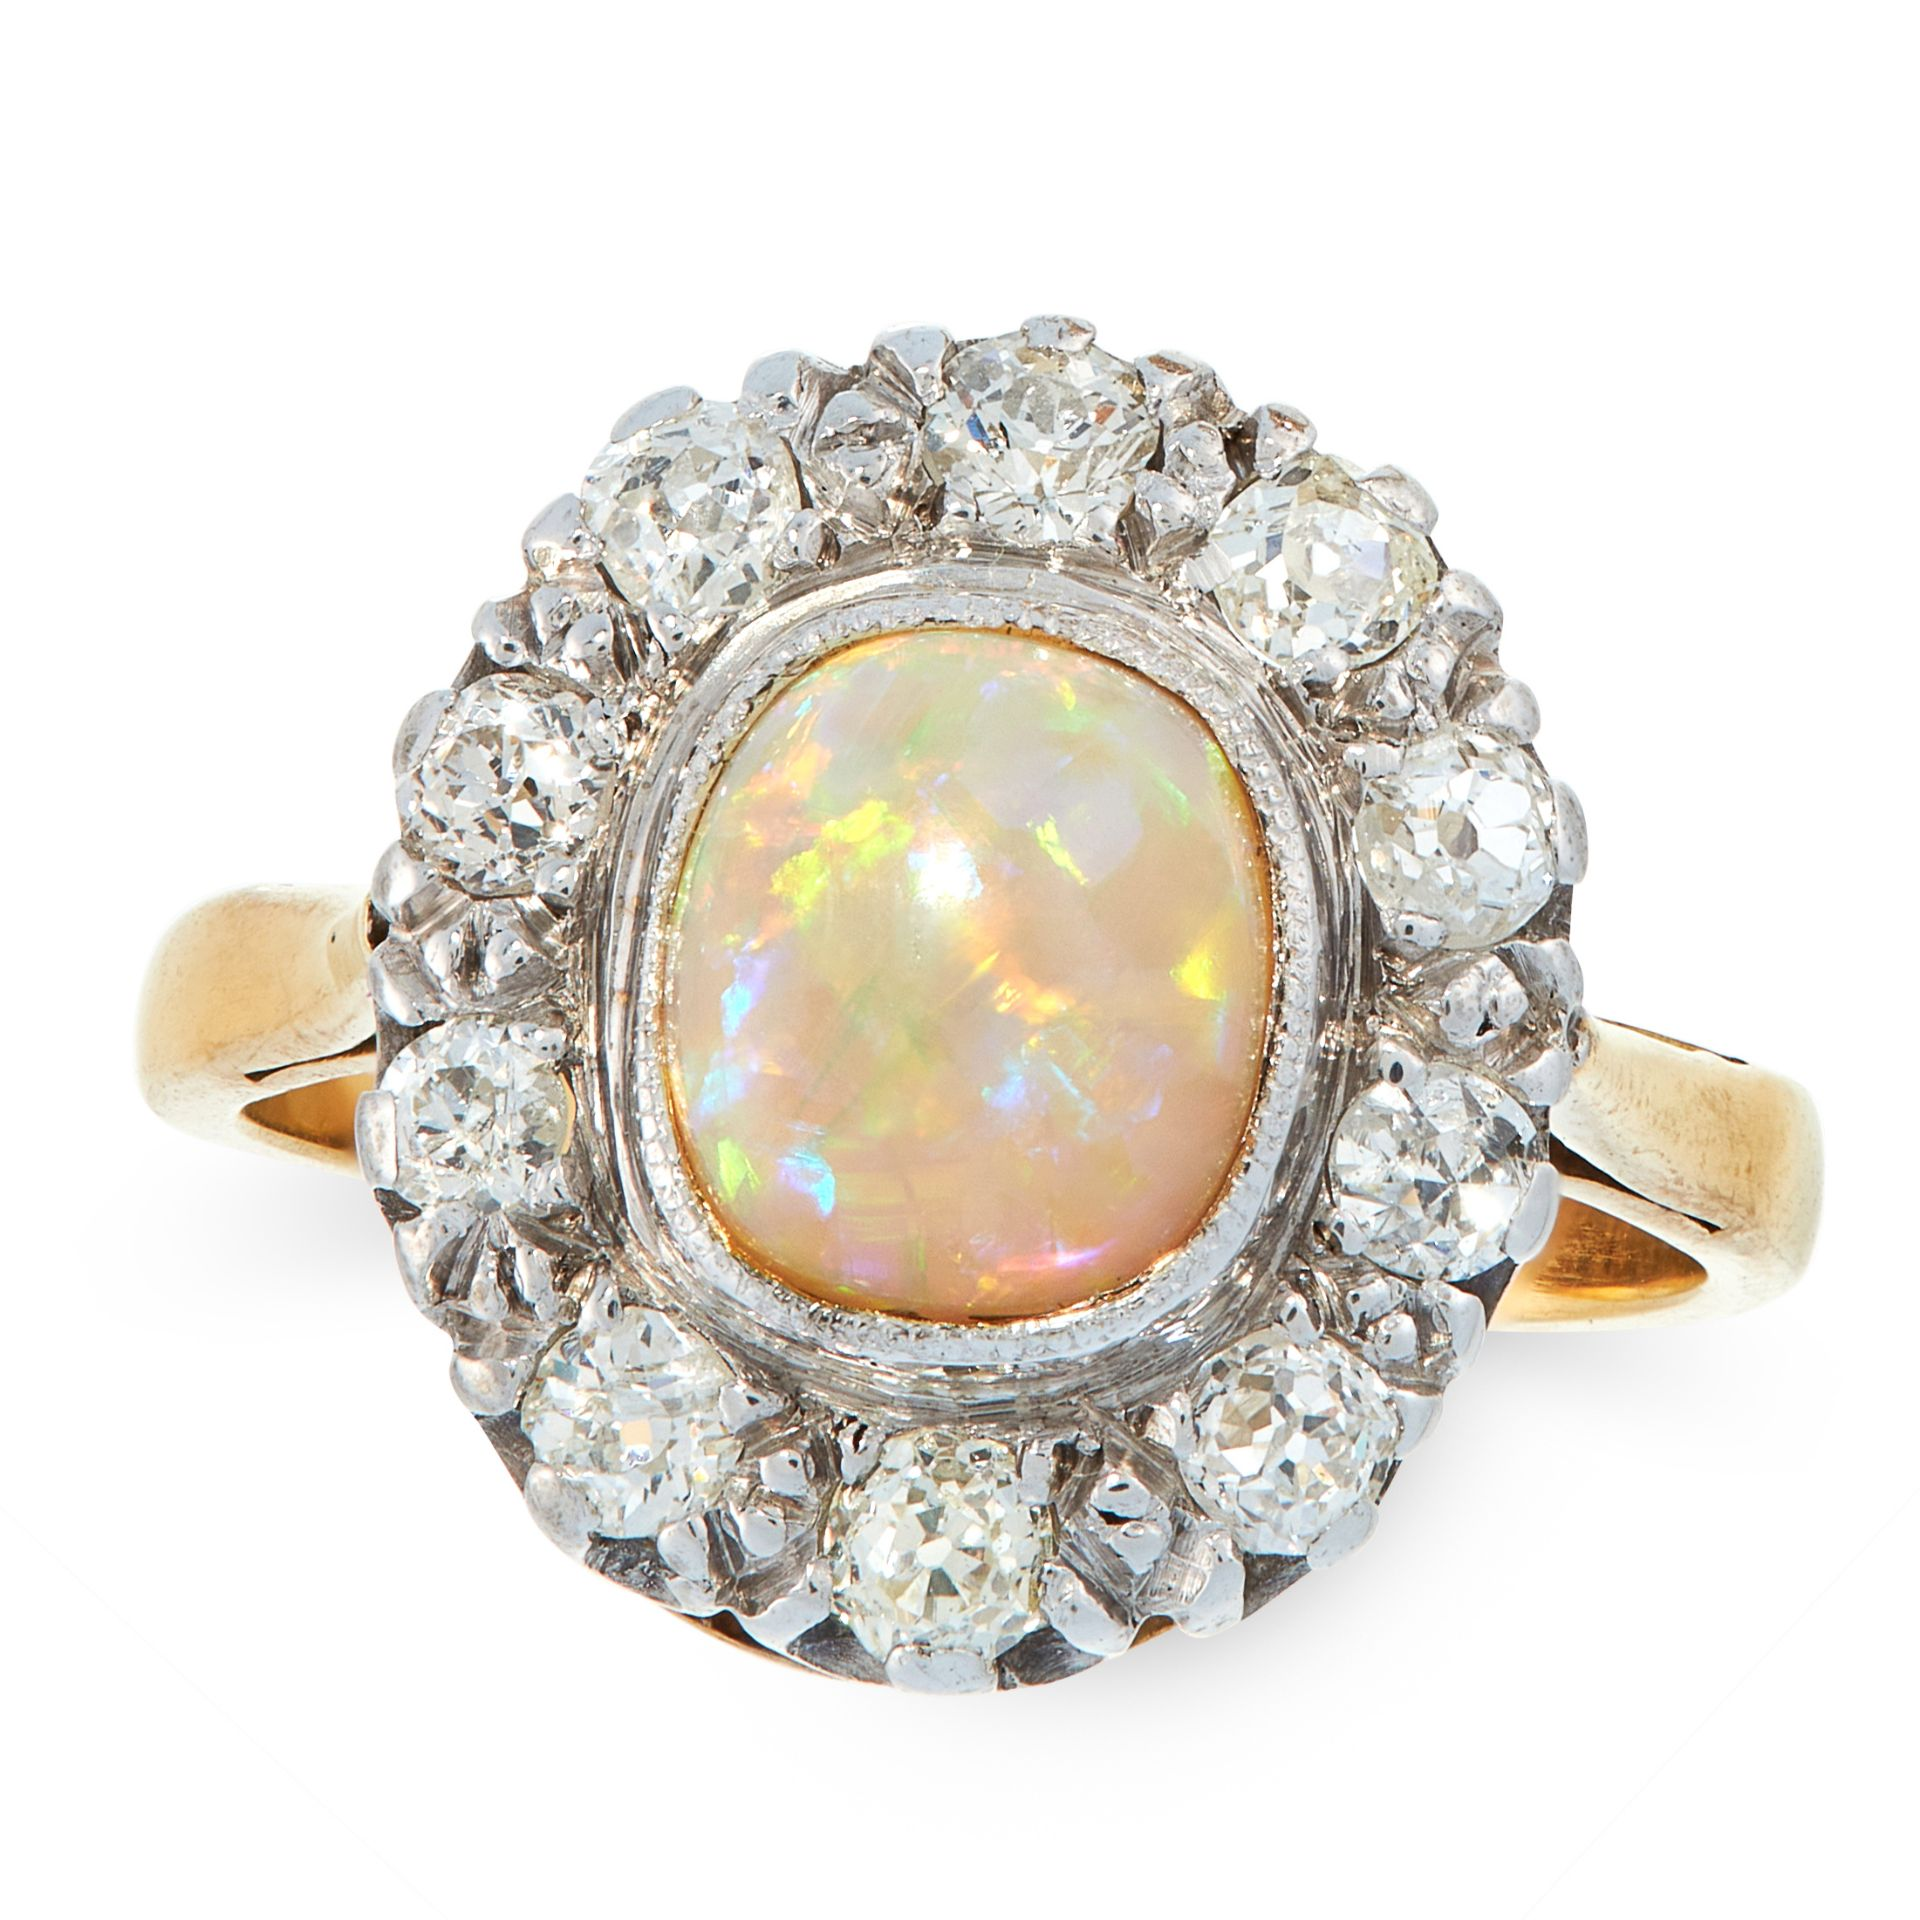 AN OPAL AND DIAMOND DRESS RING in high carat yellow gold, set with an oval cabochon opal of 1.11